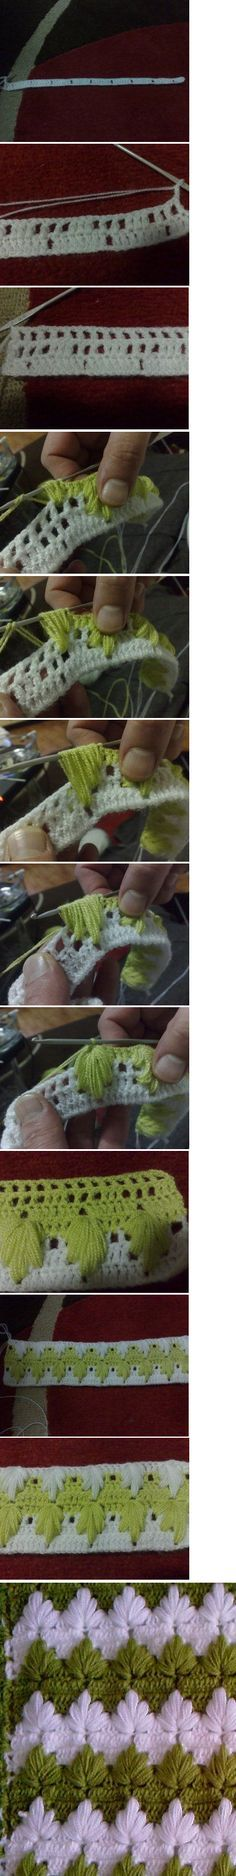 This is a fun crochet stitch. One pinner stated: I don't remember the name of this crochet technique but all I need is the tutorial! Crochet Motifs, Crochet Stitches Patterns, Filet Crochet, Crochet Designs, Stitch Patterns, Knitting Patterns, Love Crochet, Crochet Crafts, Crochet Yarn